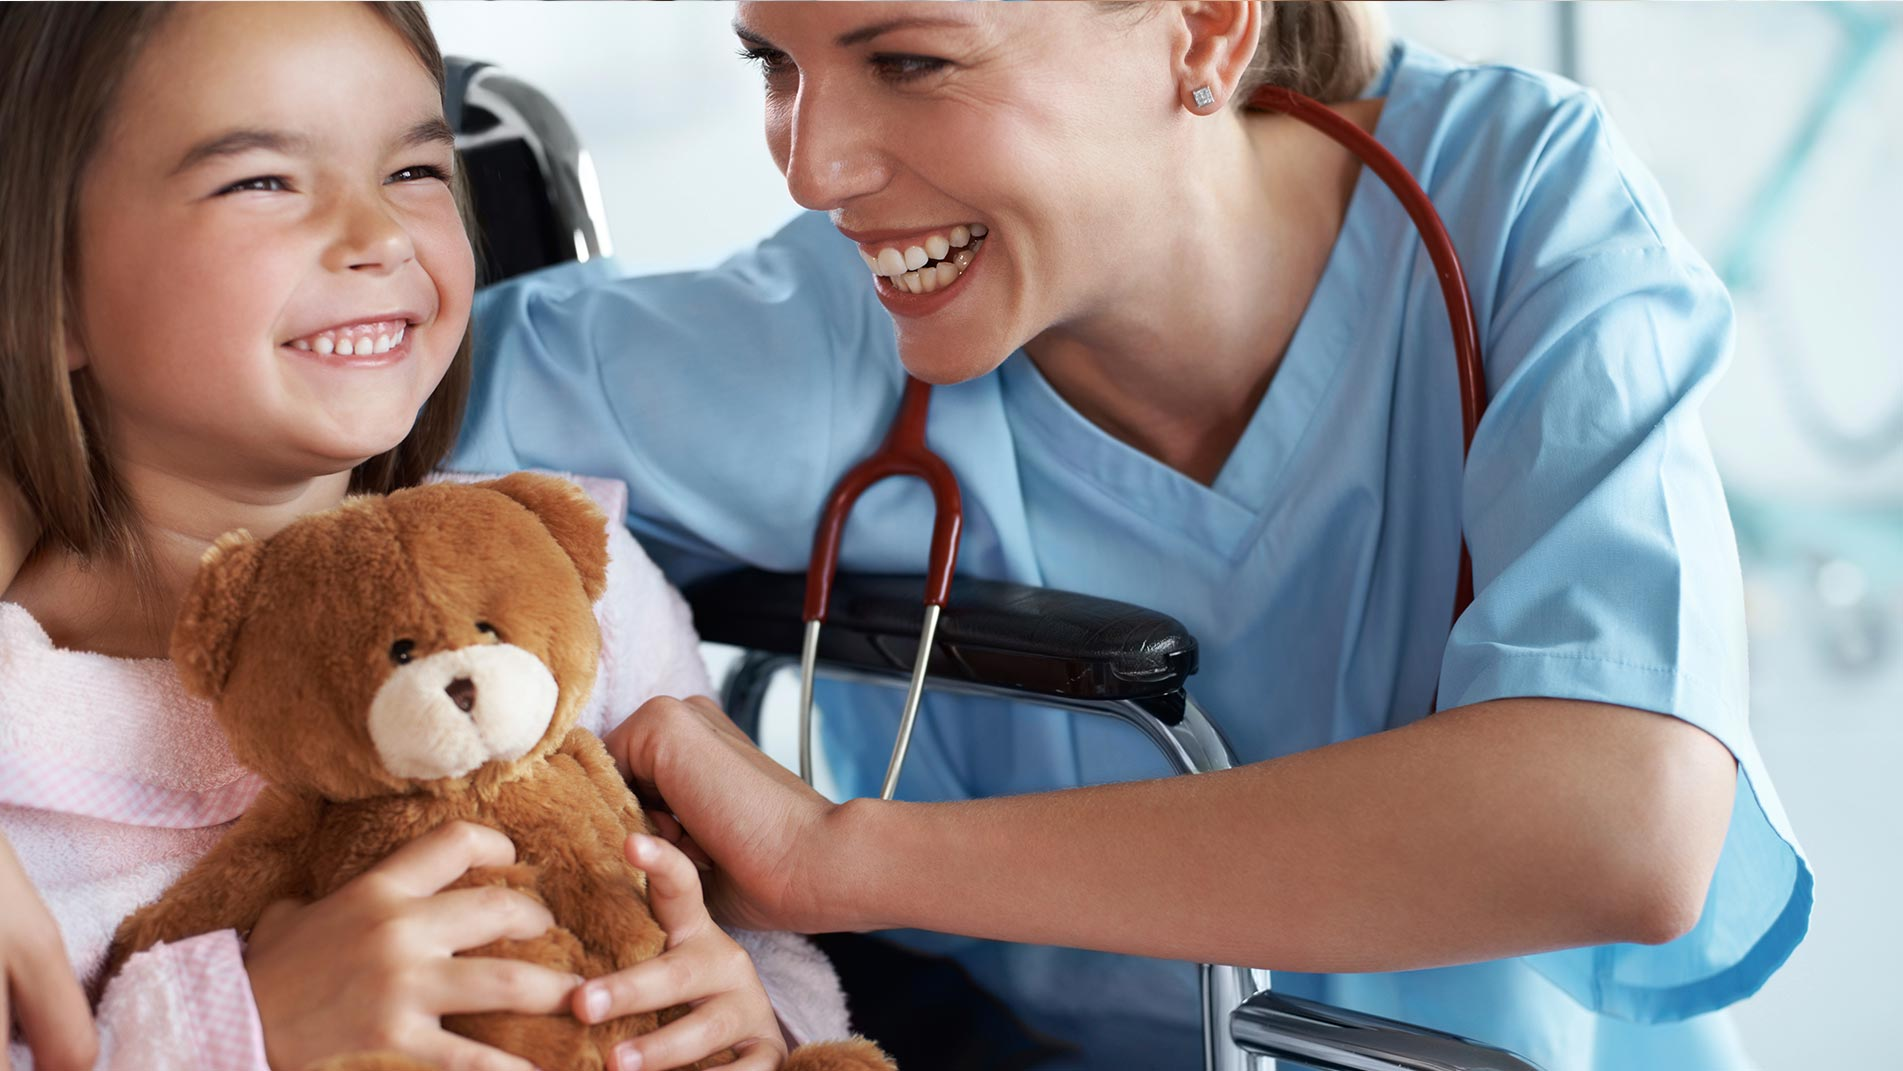 healthcare careers: